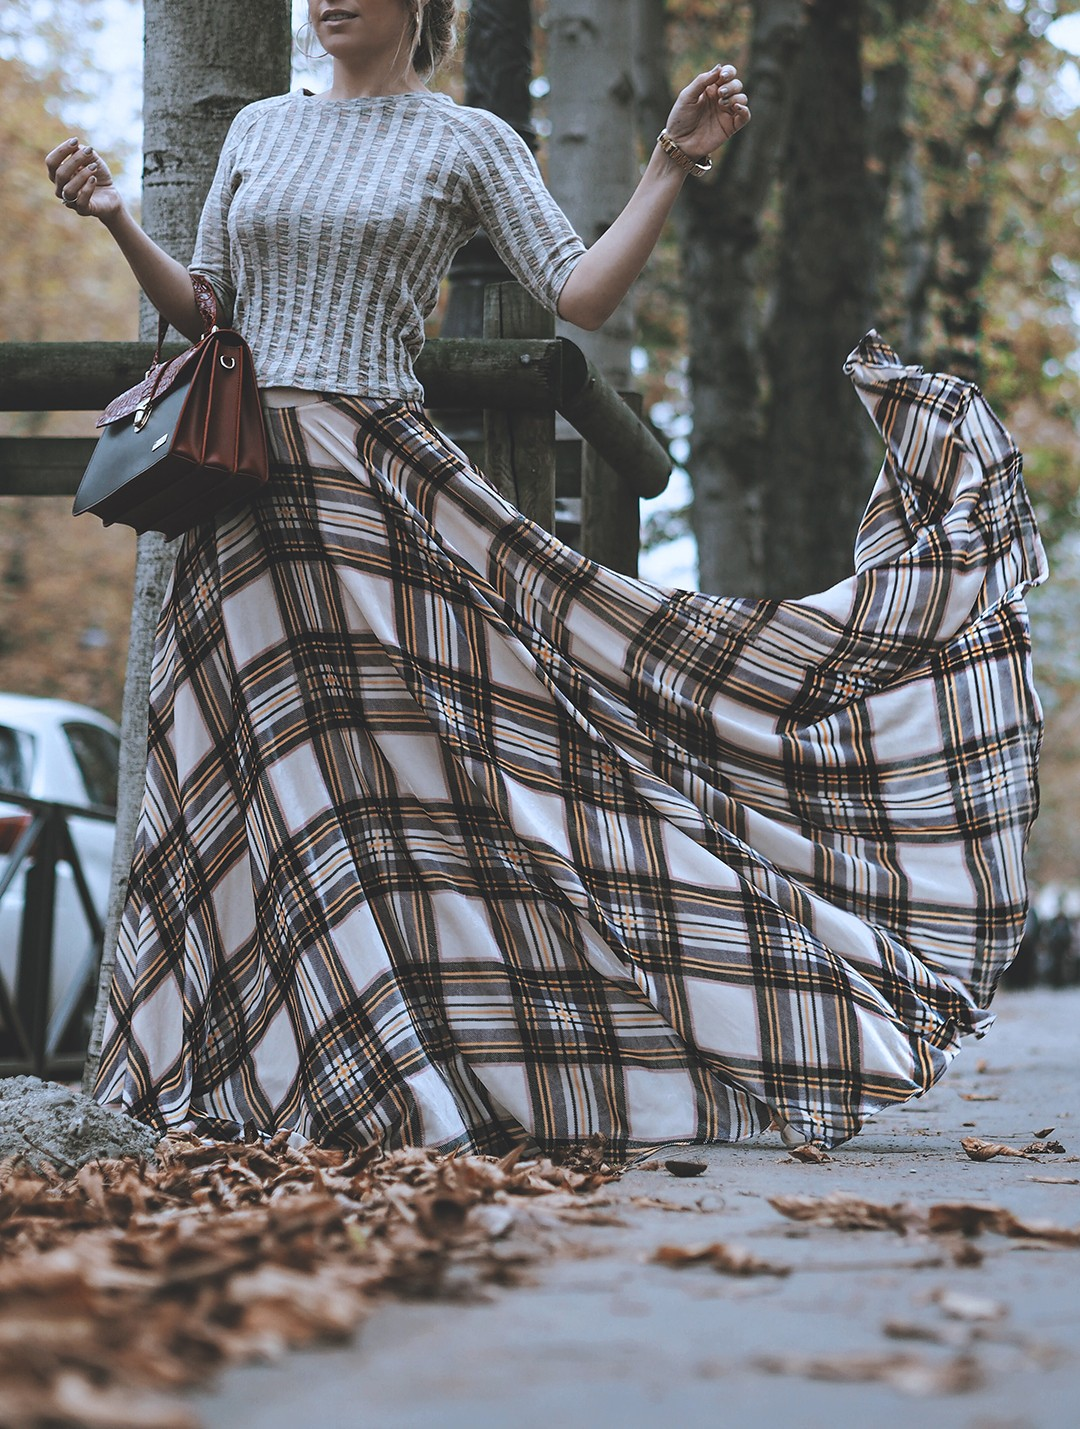 tete-by-odette-paris-shooting-monica-sors-autumn-plaid-skirtimg_2271